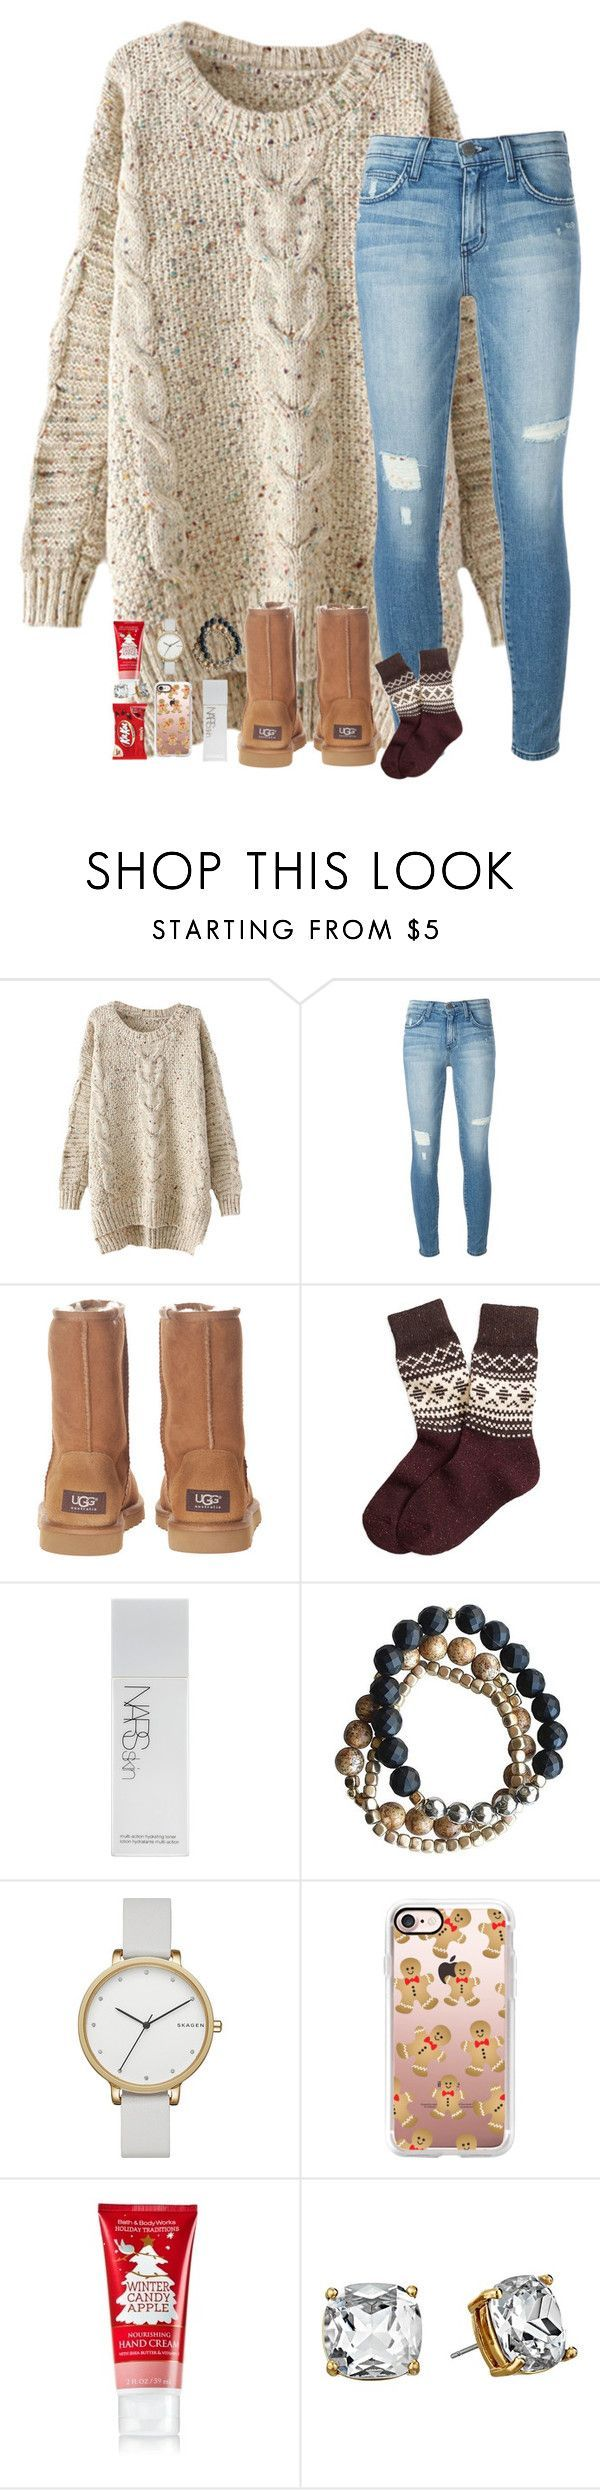 """2 more days till break"" by hailstails ❤ liked on Polyvore featuring Current/Elliott, UGG Australia, Brooks Brothers, NARS Cosmetics, Skagen, Casetify and Kate Spade"